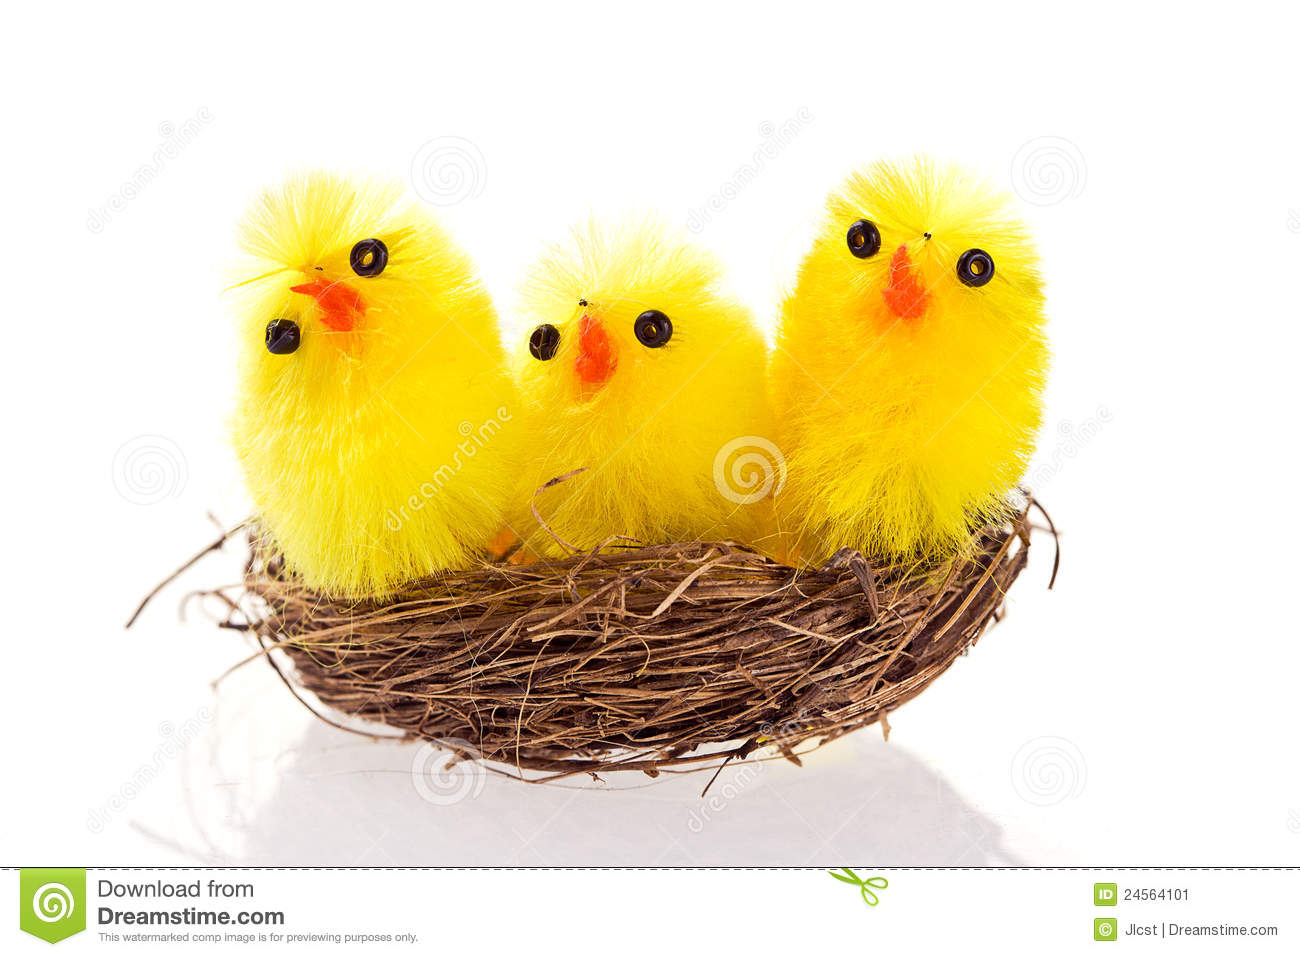 Easter Chicks | Free stock photos - Rgbstock -Free stock images ...